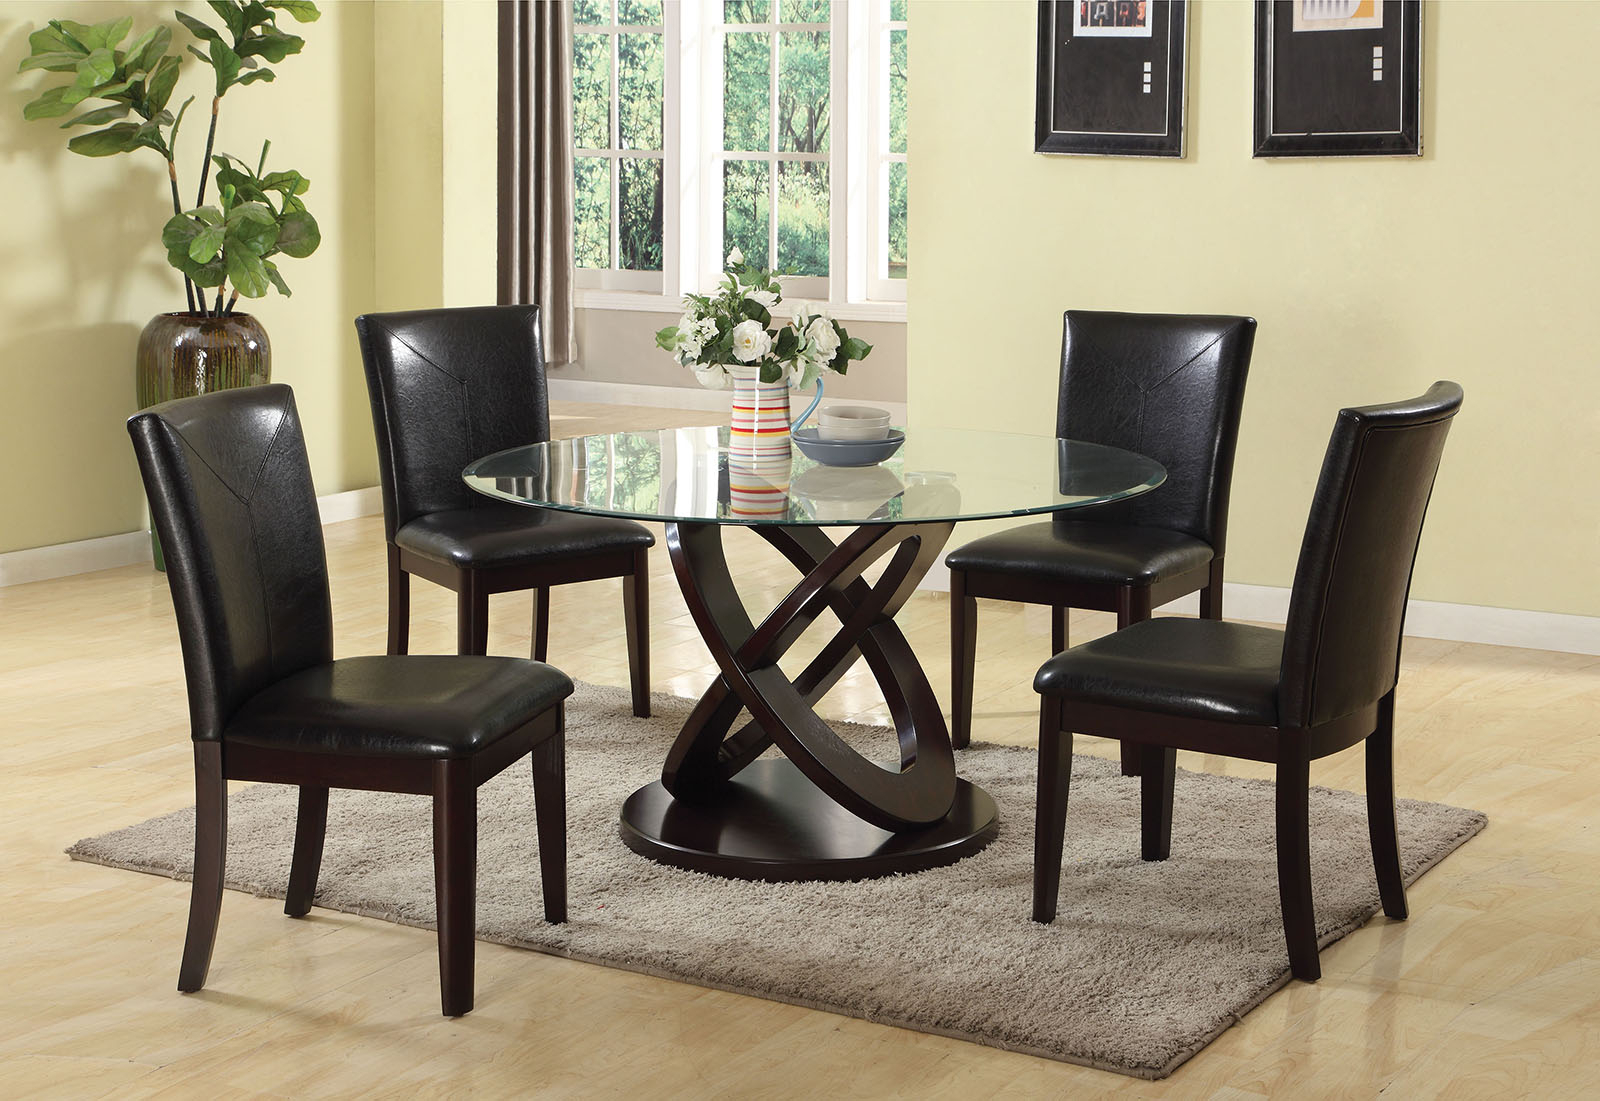 Acme Furniture Gable 5Pc Round Dining Set In Espresso In Current Nolan Round Pedestal Dining Tables (View 19 of 25)